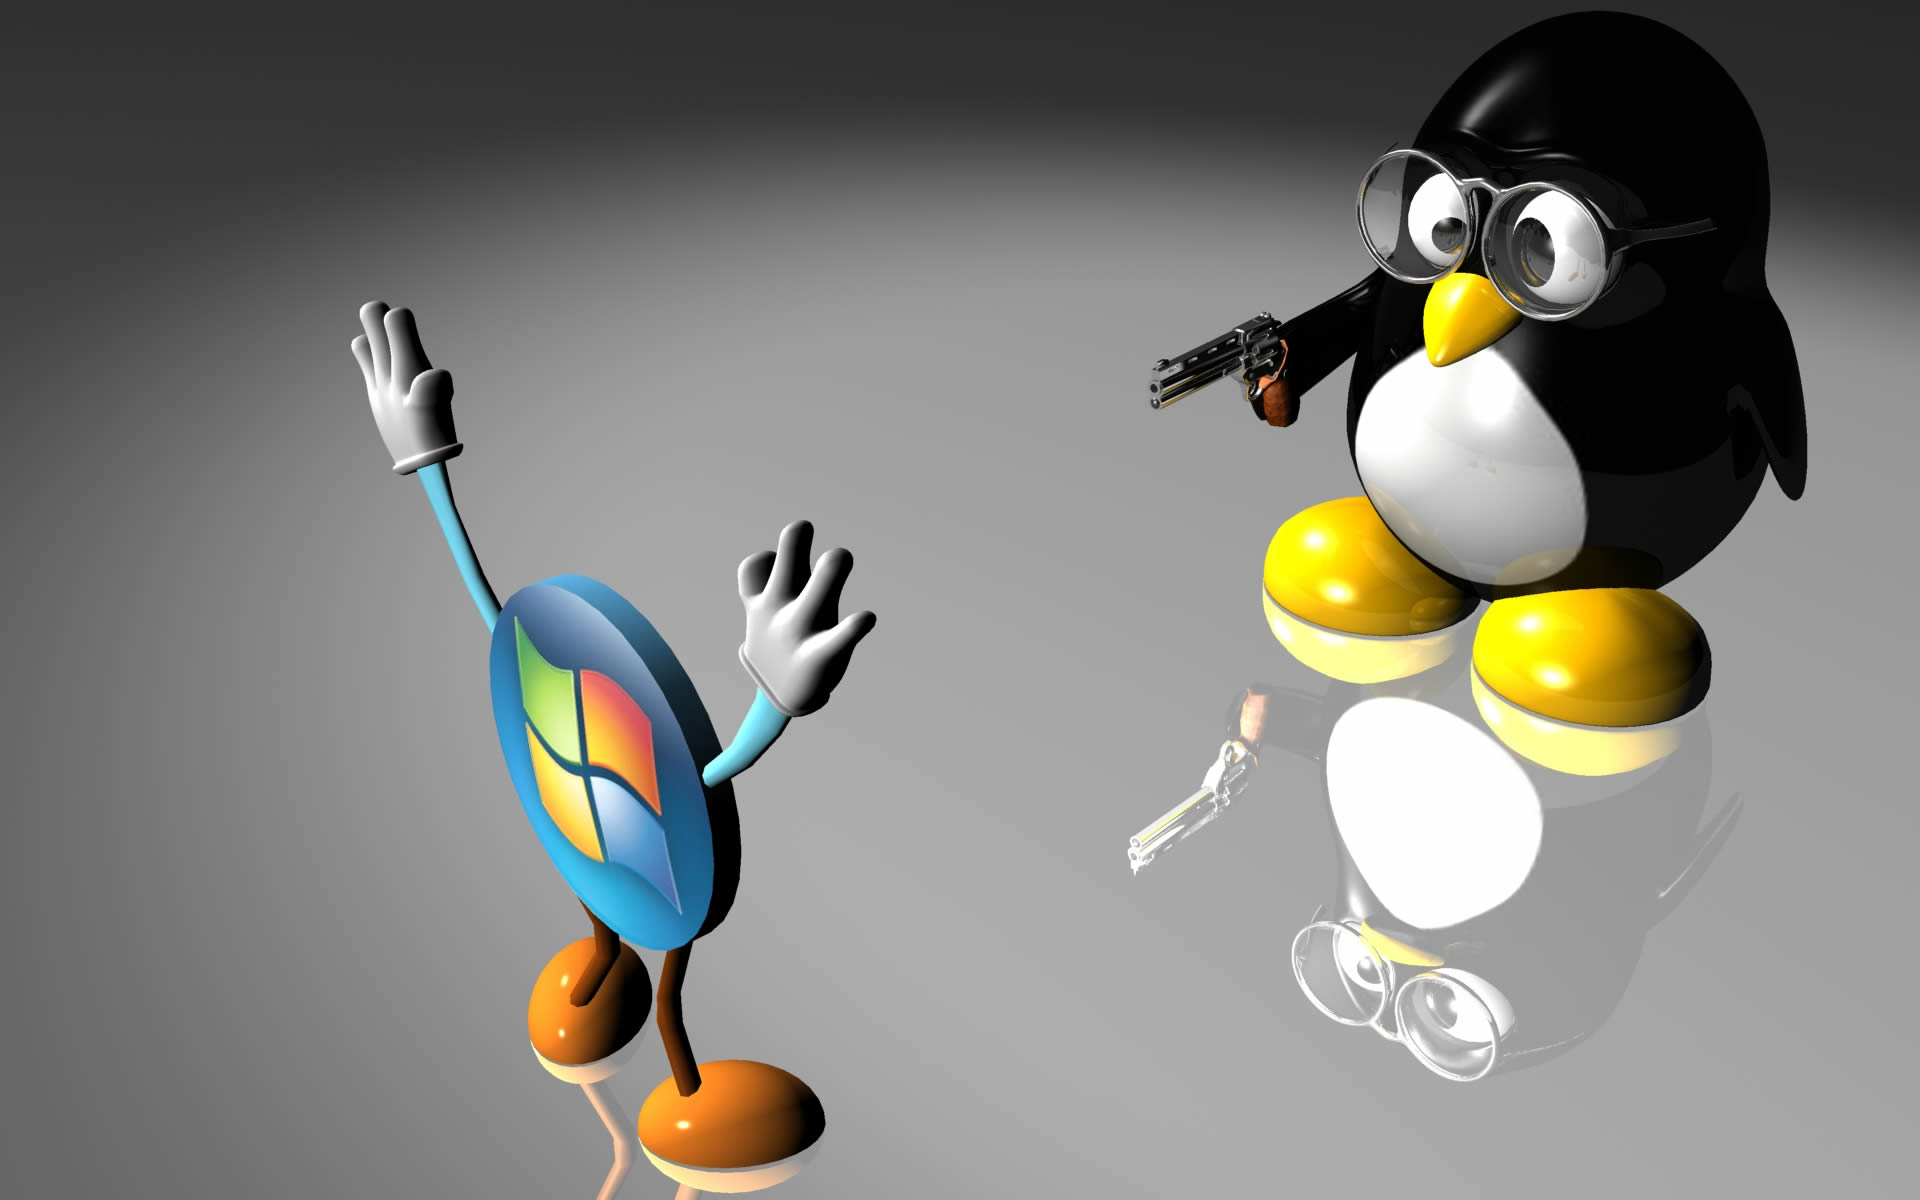 Linux wallpapers 15 1920x1200